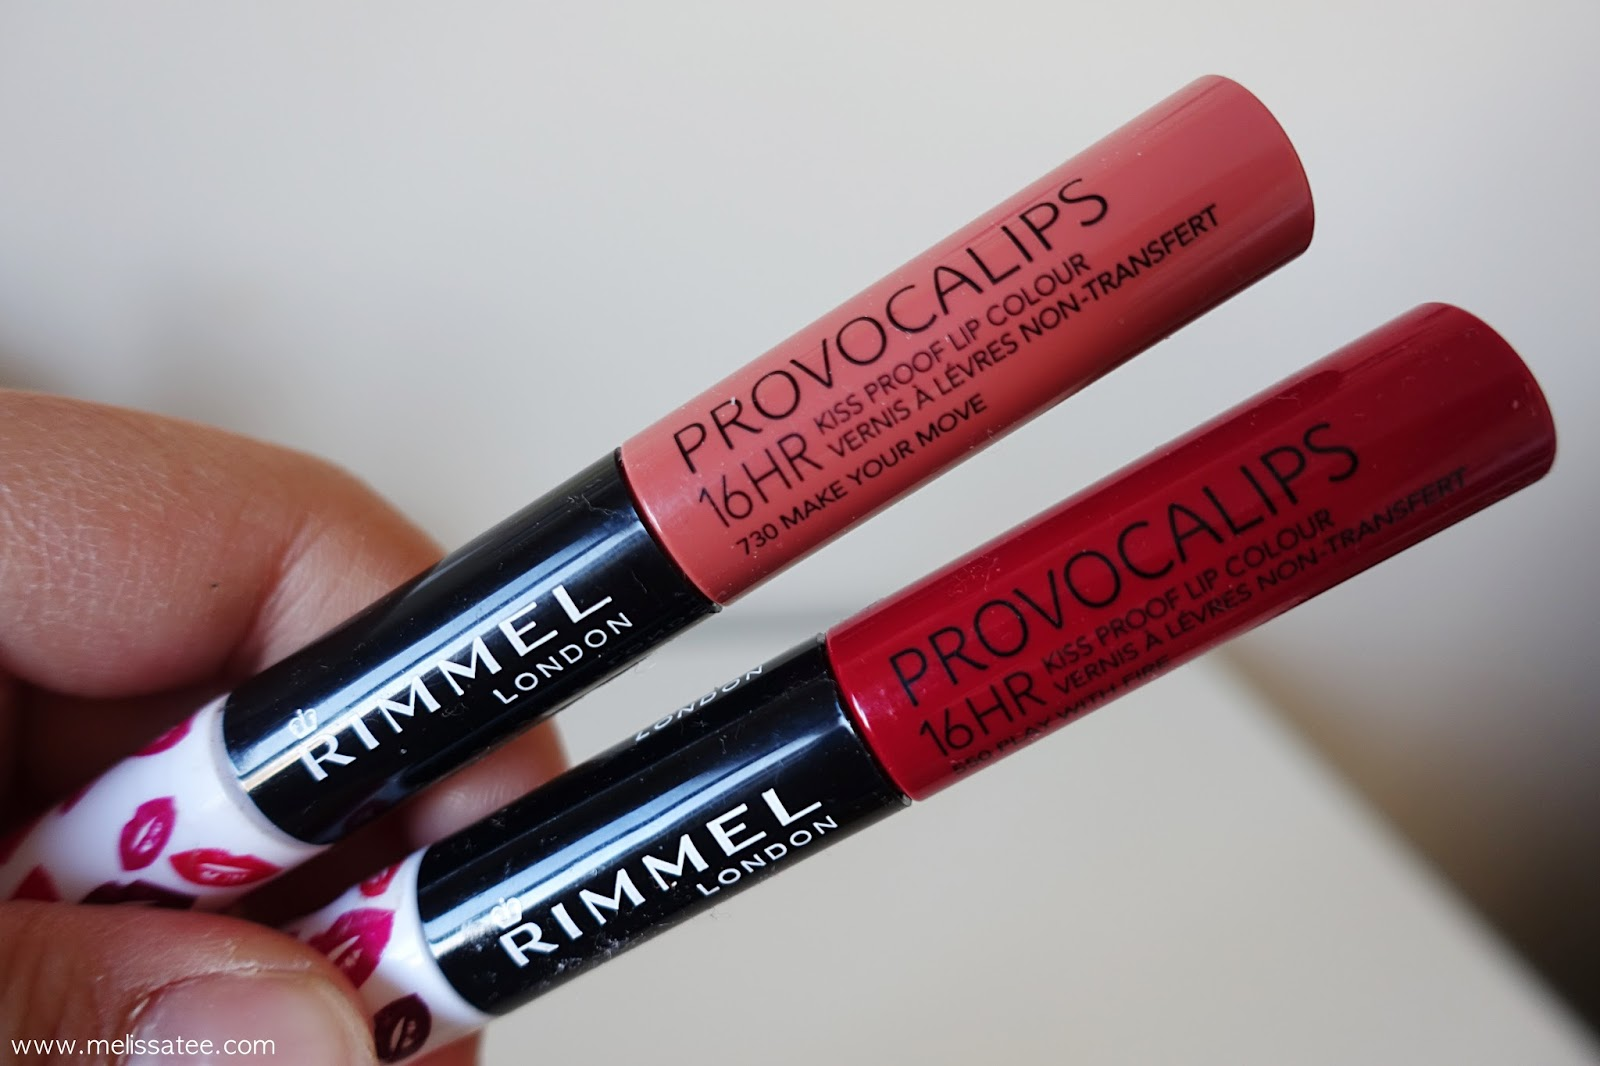 rimmel provocalips, rimmel liquid lipsticks, rimmel lipsticks, rimmel provocalips 16 hour kiss proof lip colour, rimmel play with fire, rimmel make your move